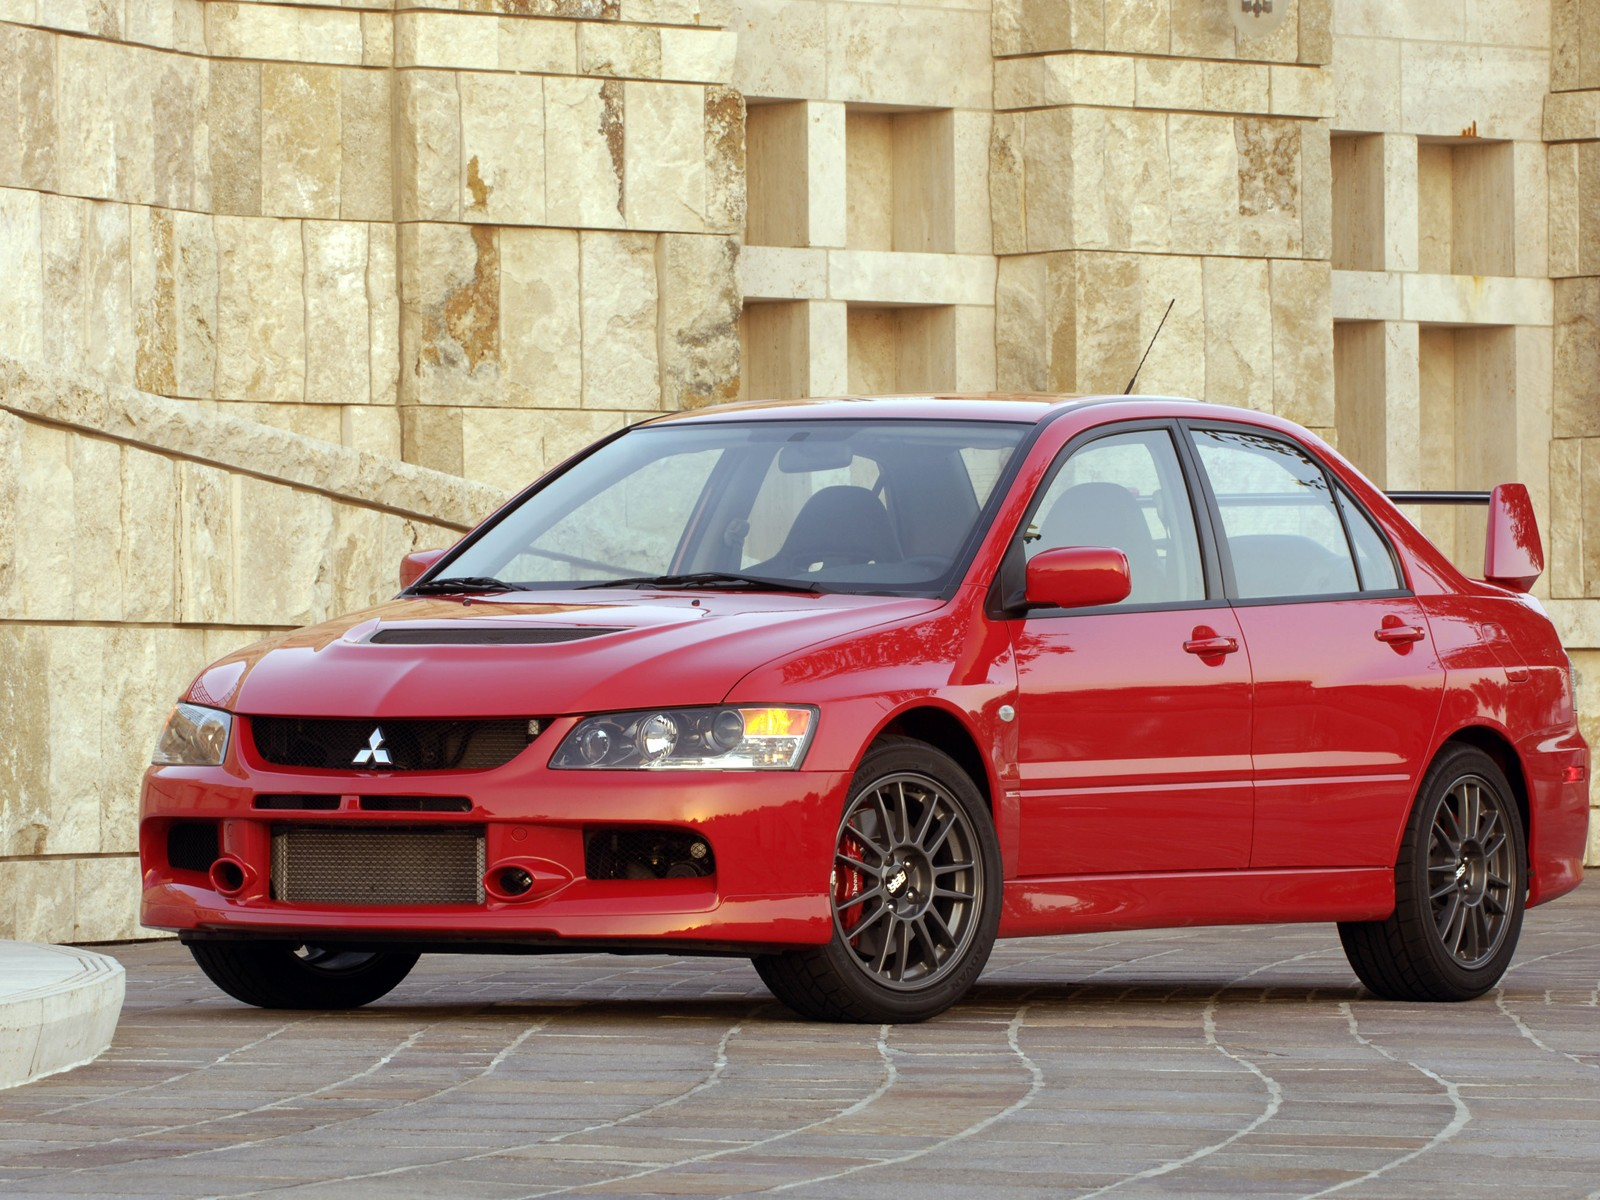 Mitsubishi Lancer Evolution IX-3.bp.blogspot.com